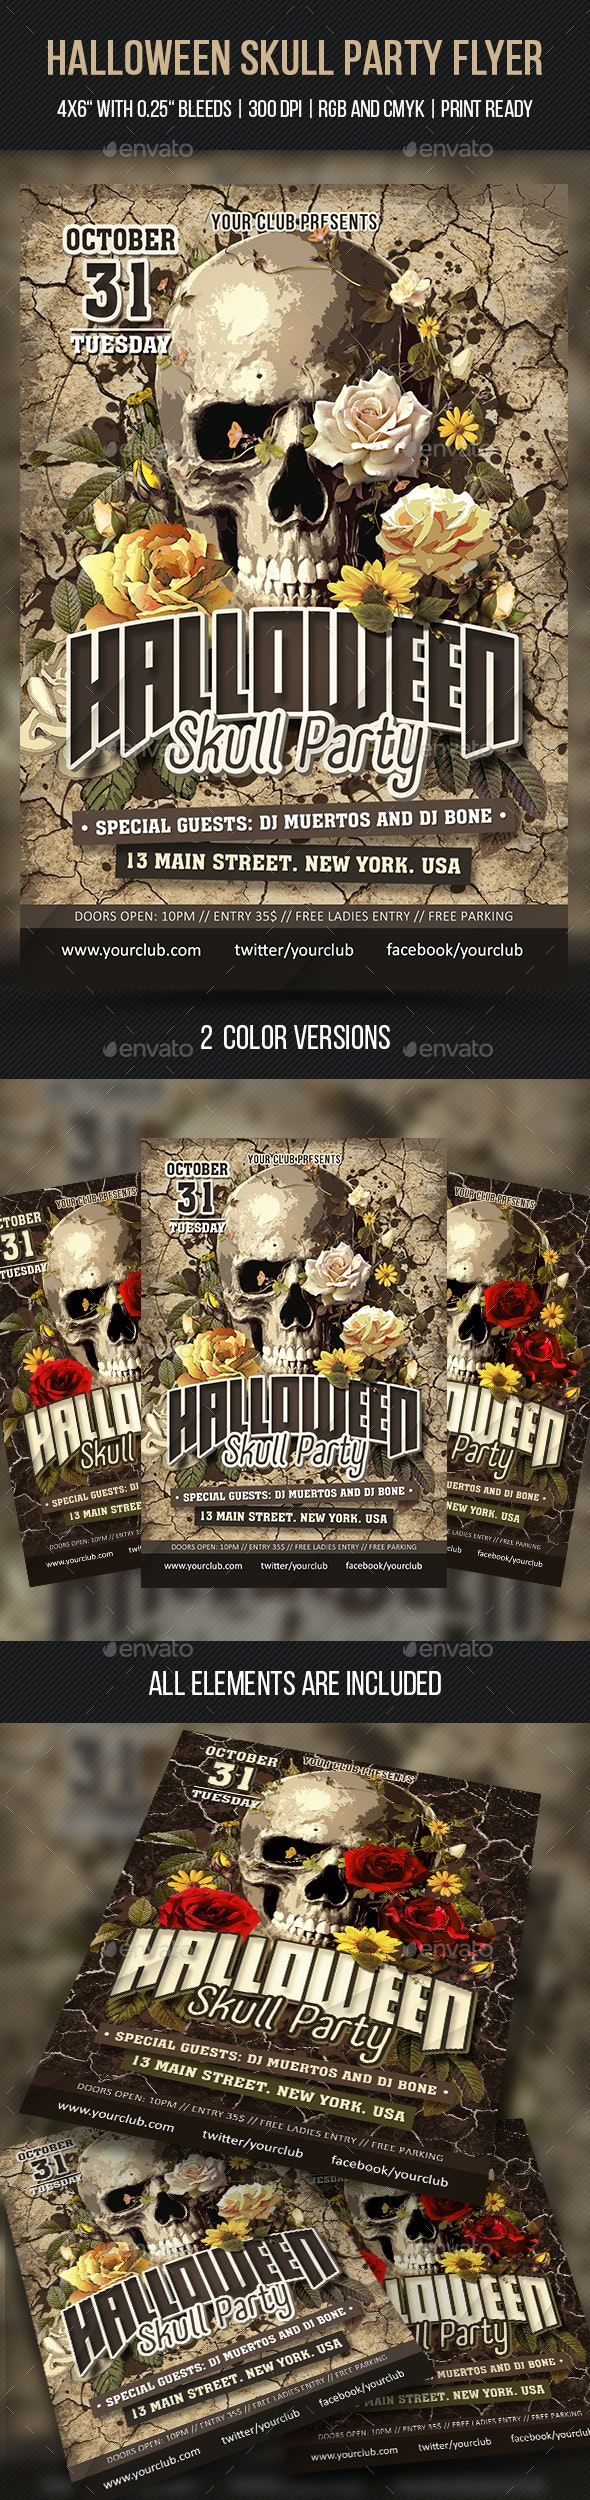 Halloween Skull Party Flyer - Clubs & Parties Events